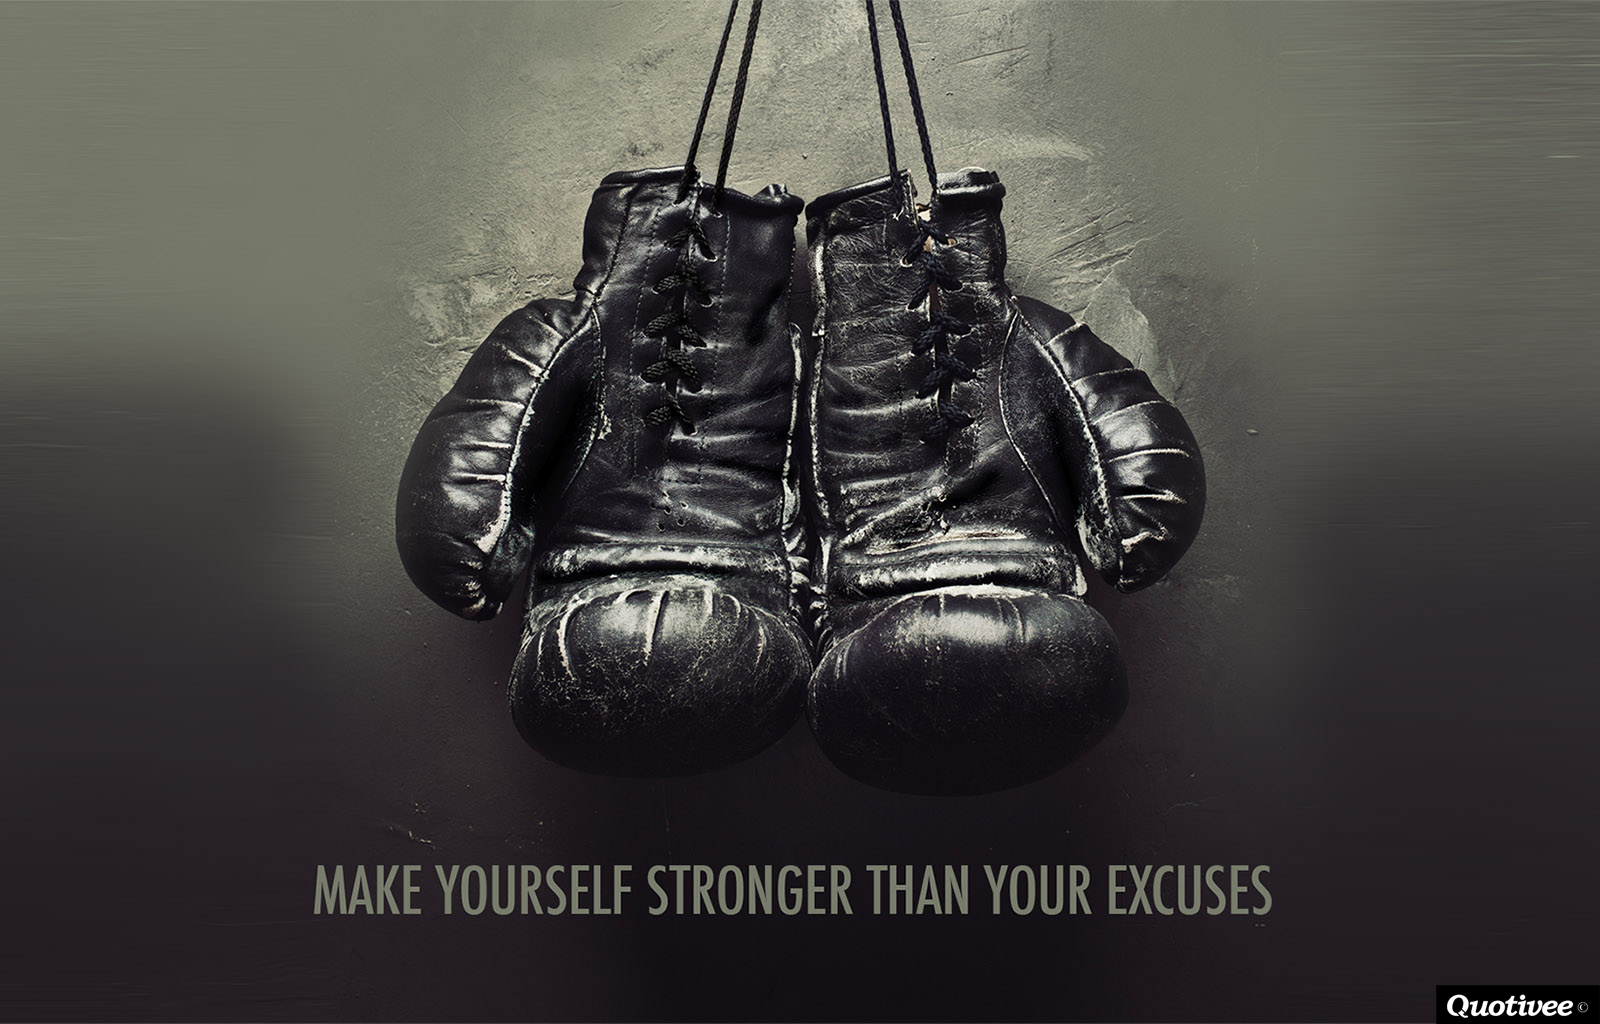 Make Yourself Stronger Than Your Excuses - Inspirational Quotes  Quotivee